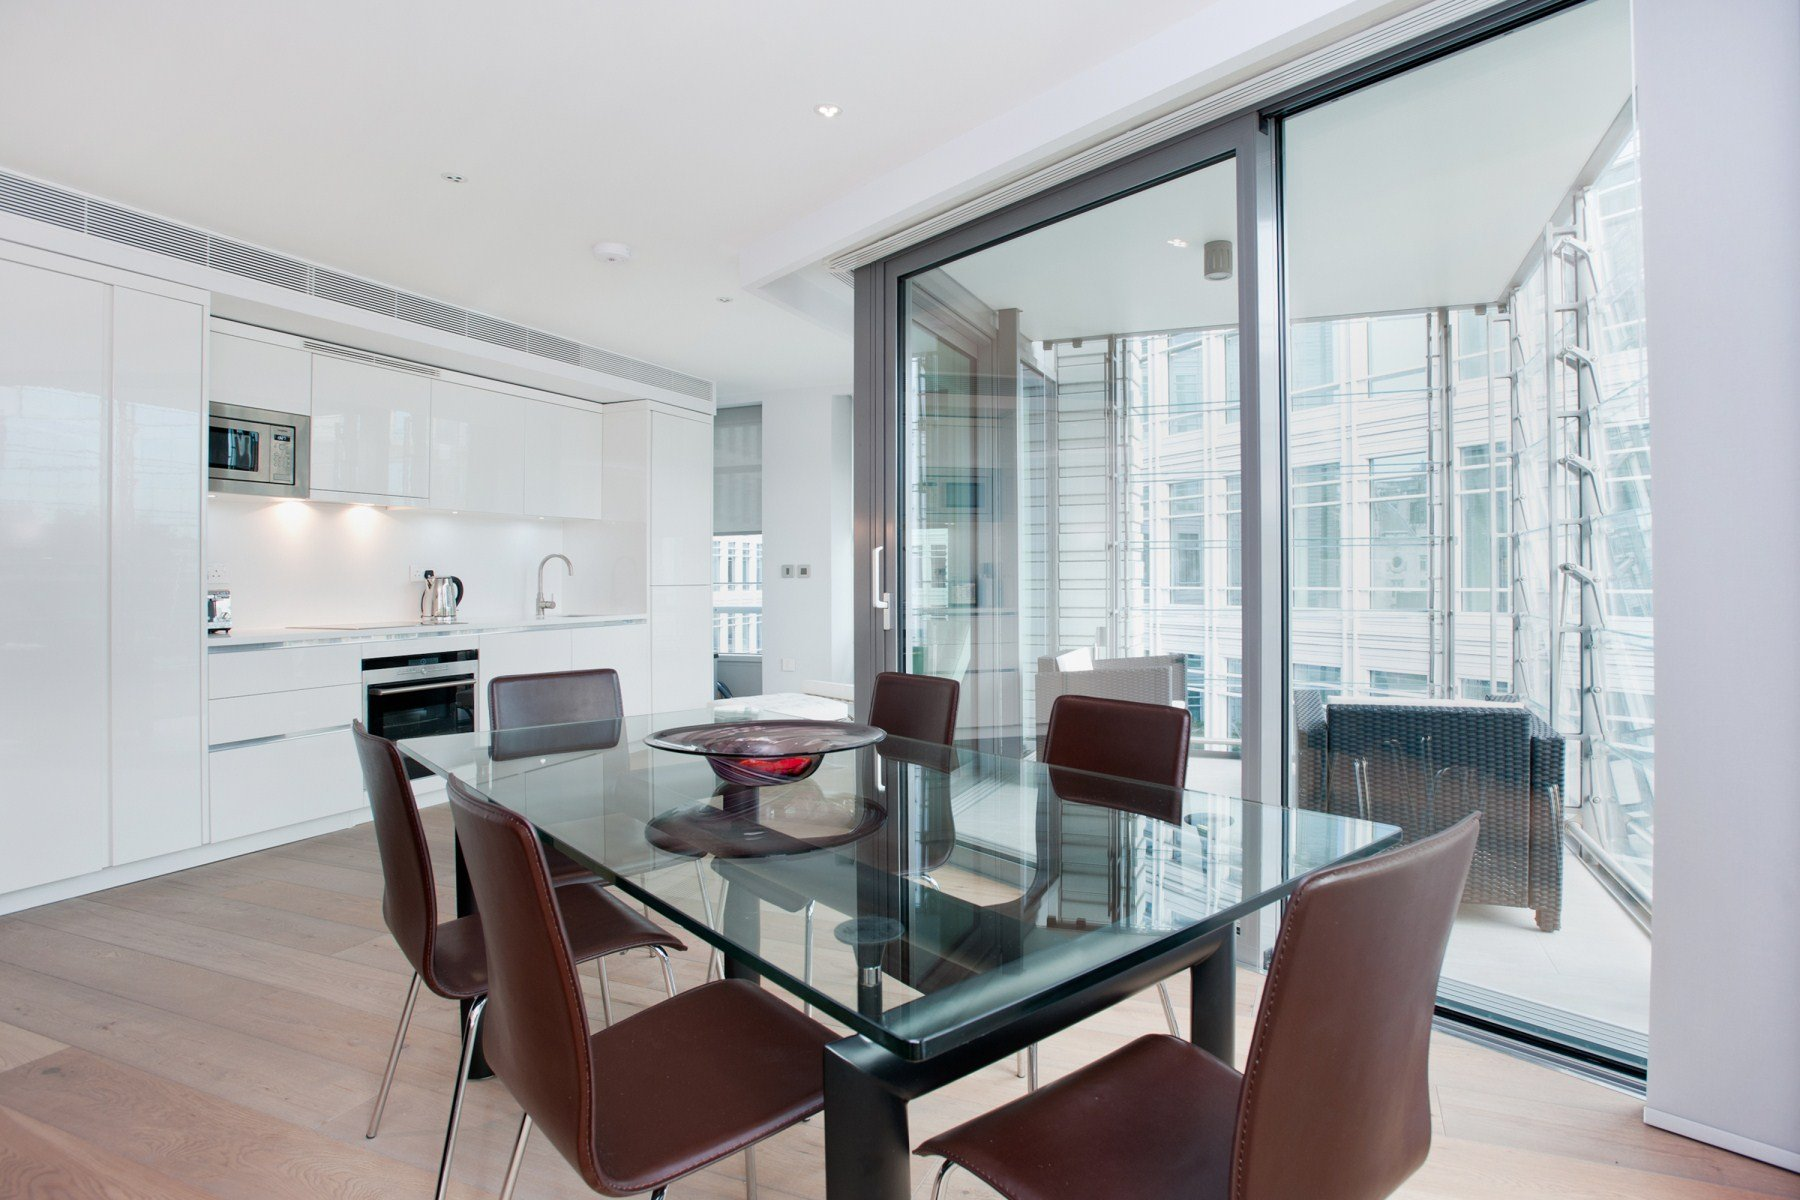 2 Bed Apartment to Rent - Central St. Giles Piazza, London ...